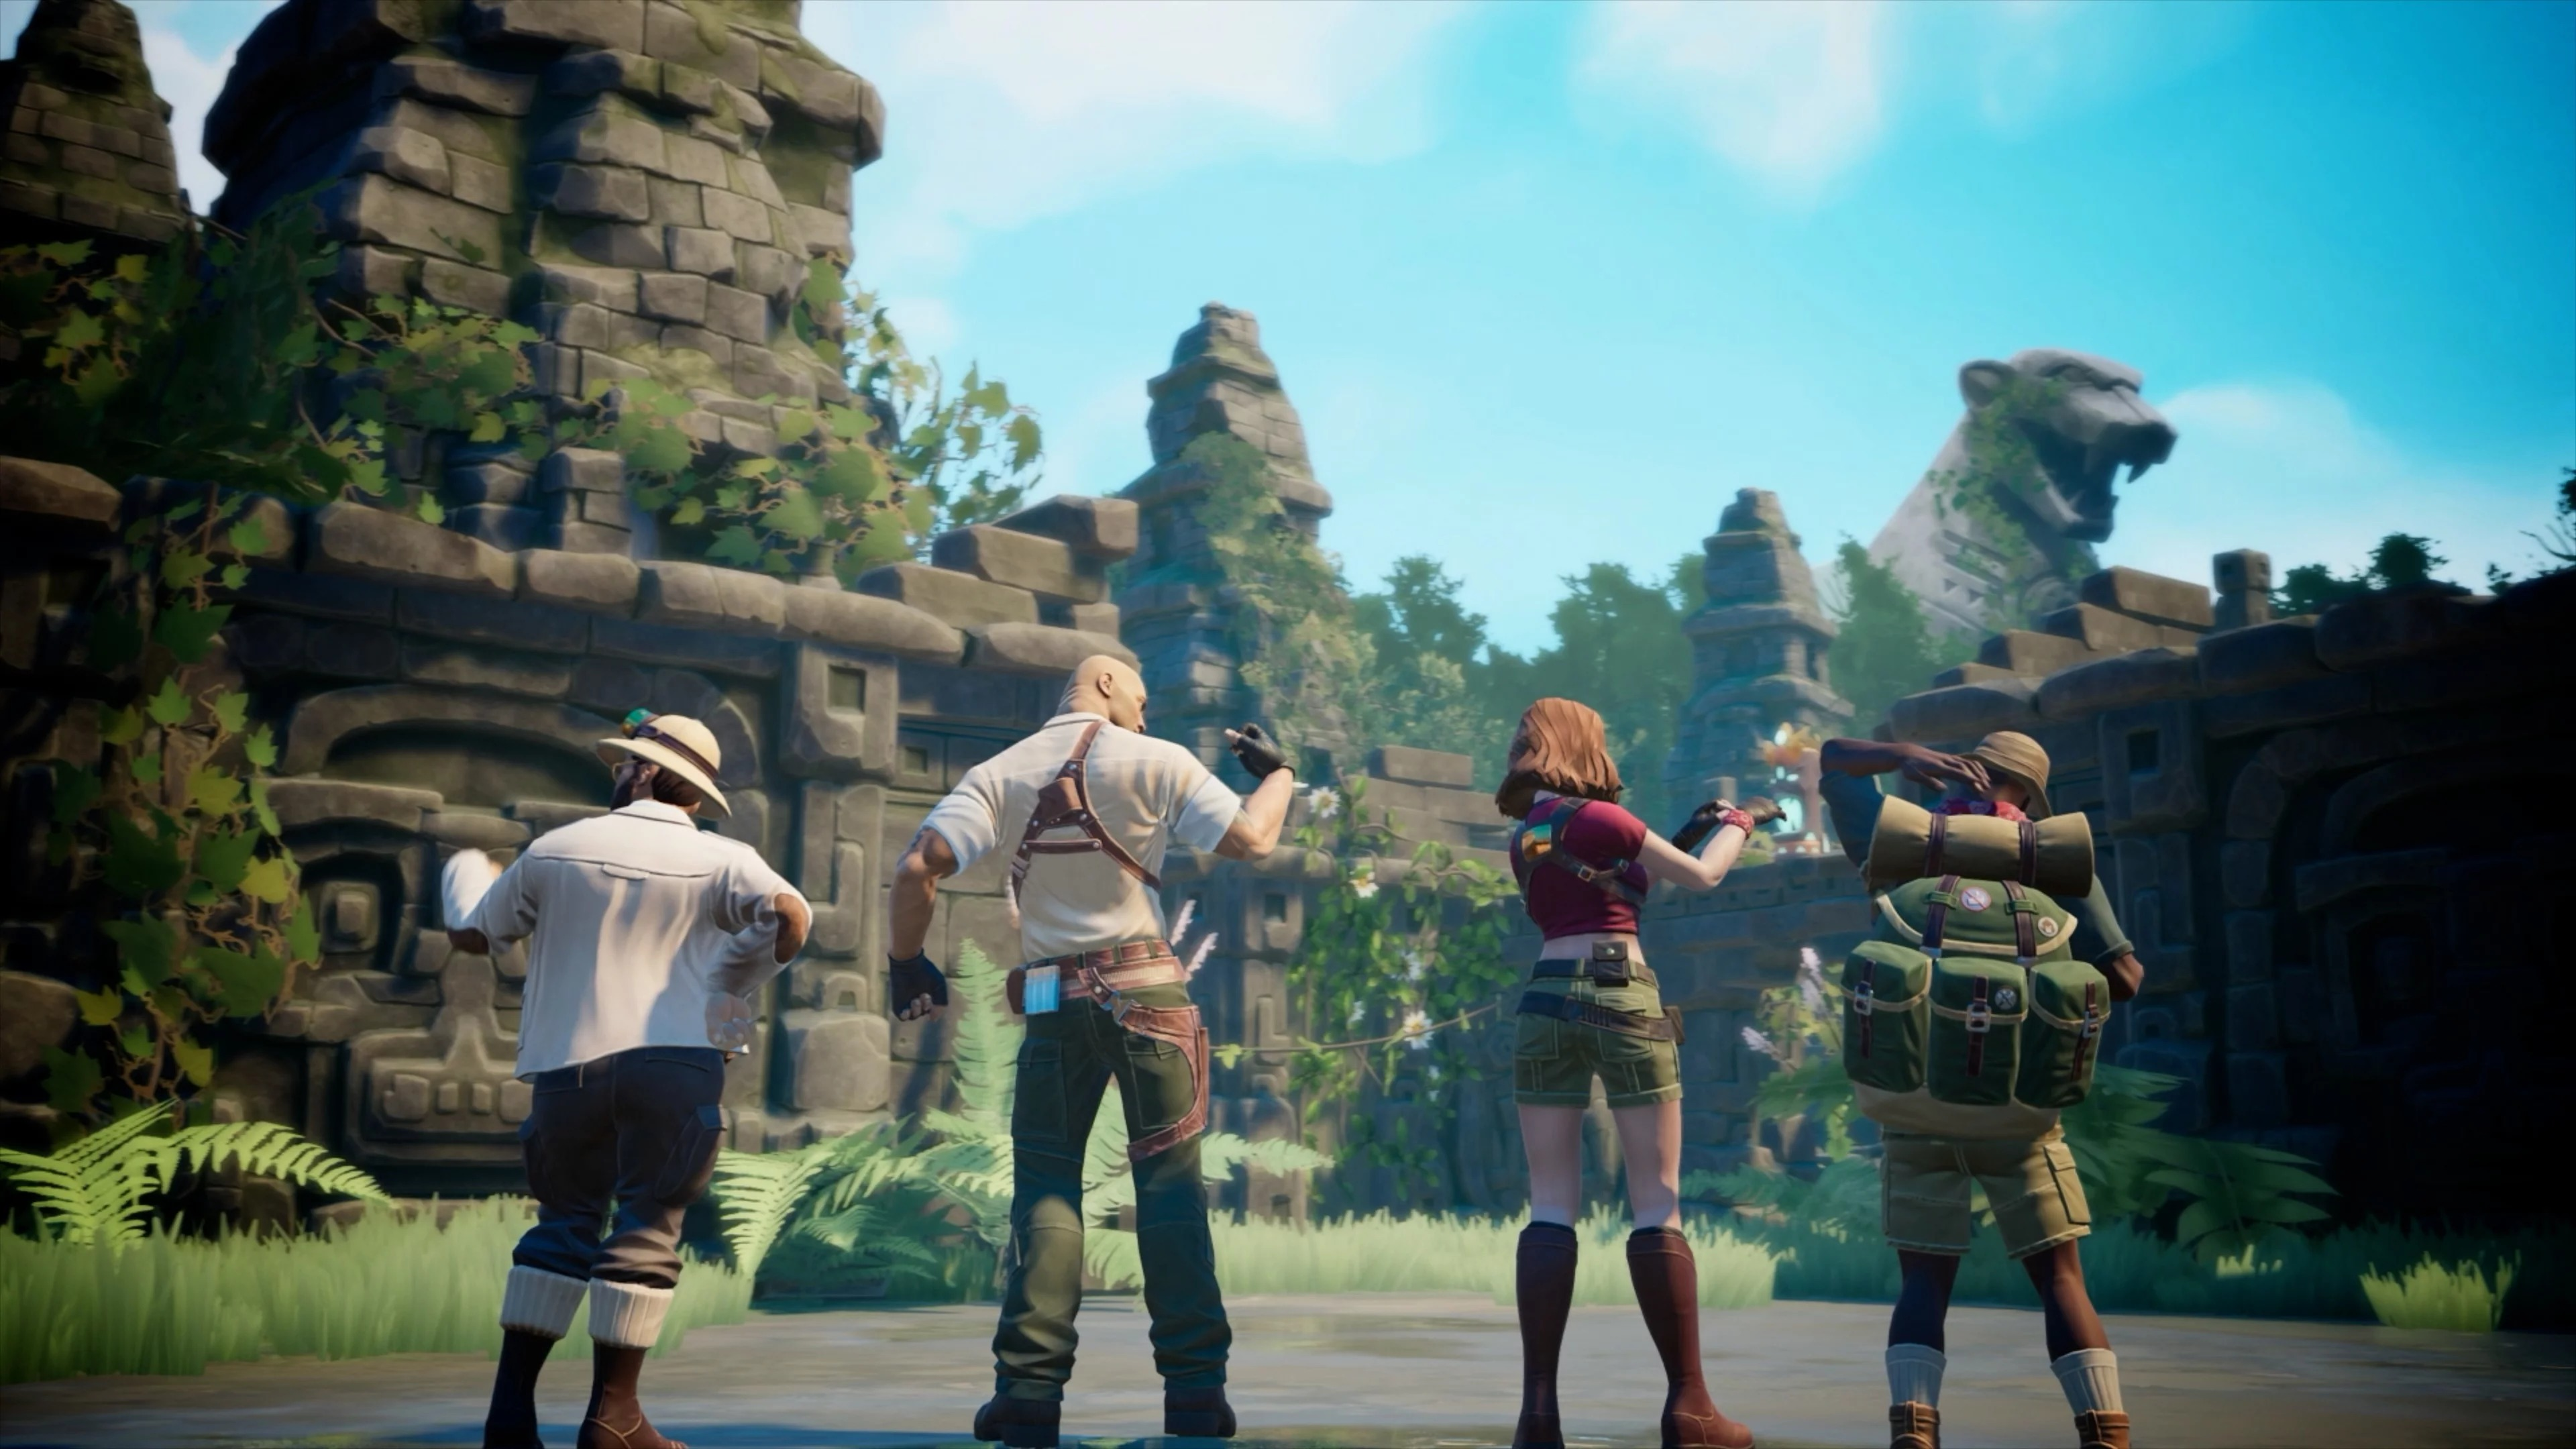 Jumanji is getting a 4-player video game tie-in